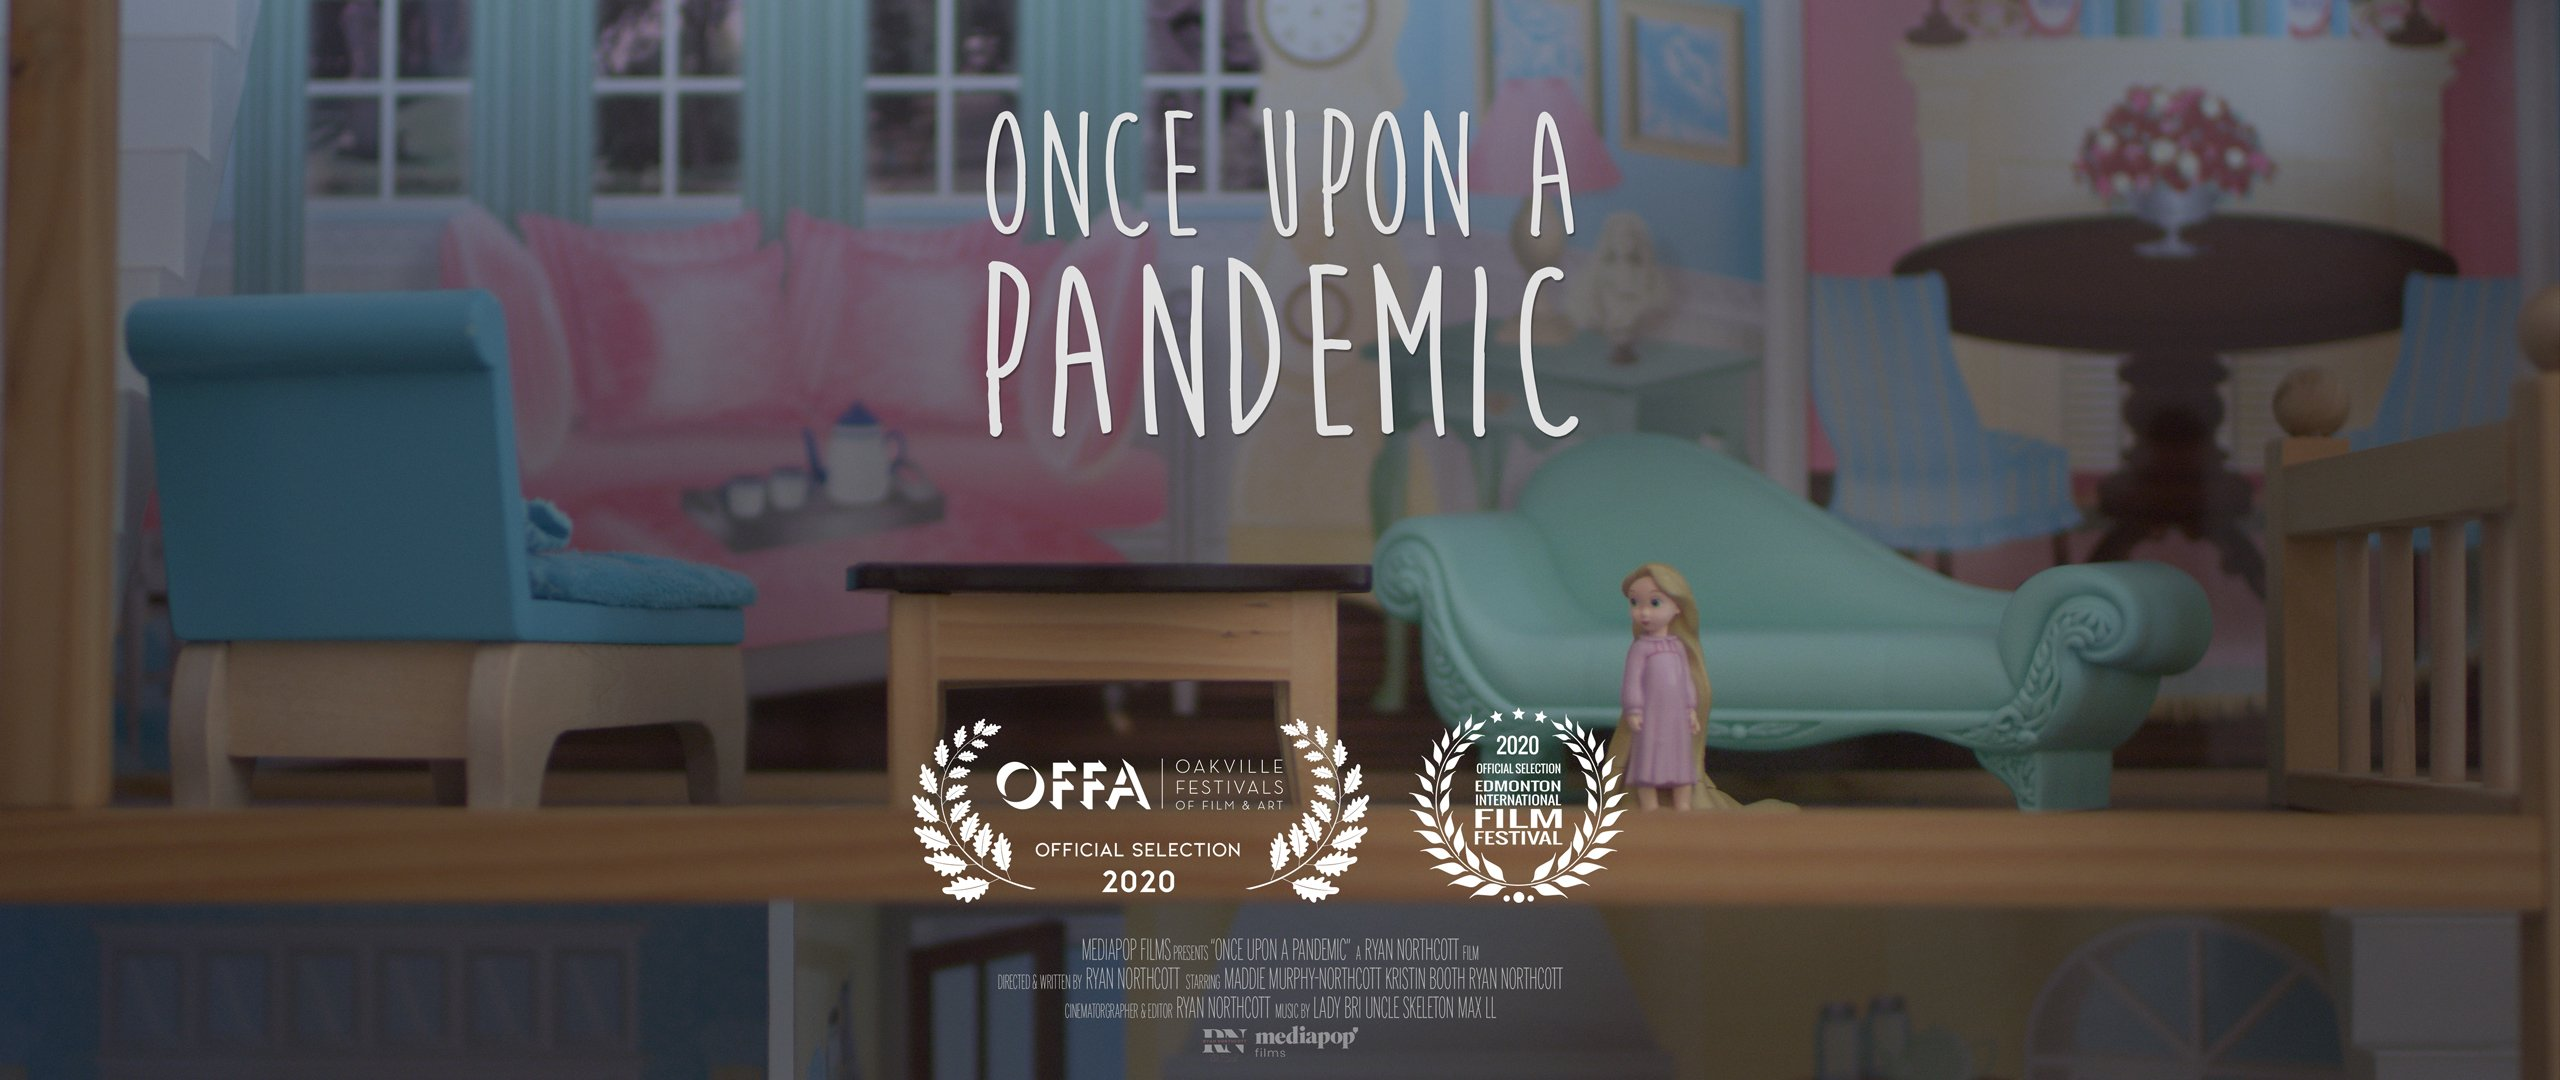 Once Upon a Pandemic Film Poster